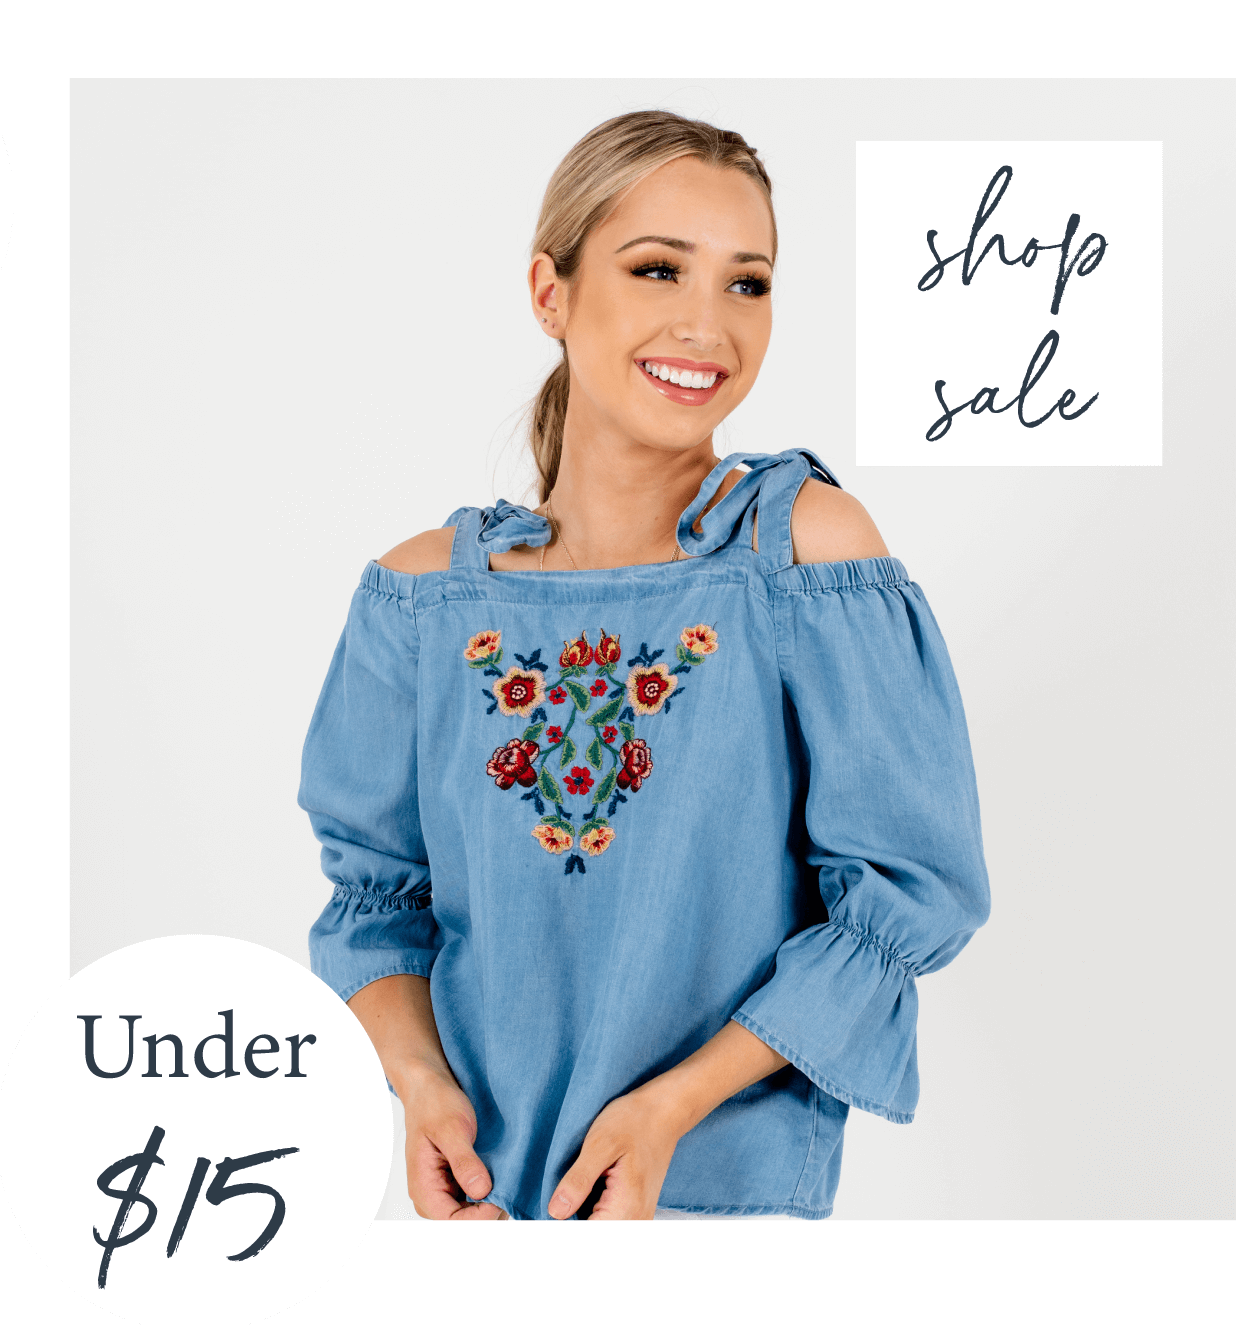 great prices, great deals, women's clothing, affordable boutique fashion